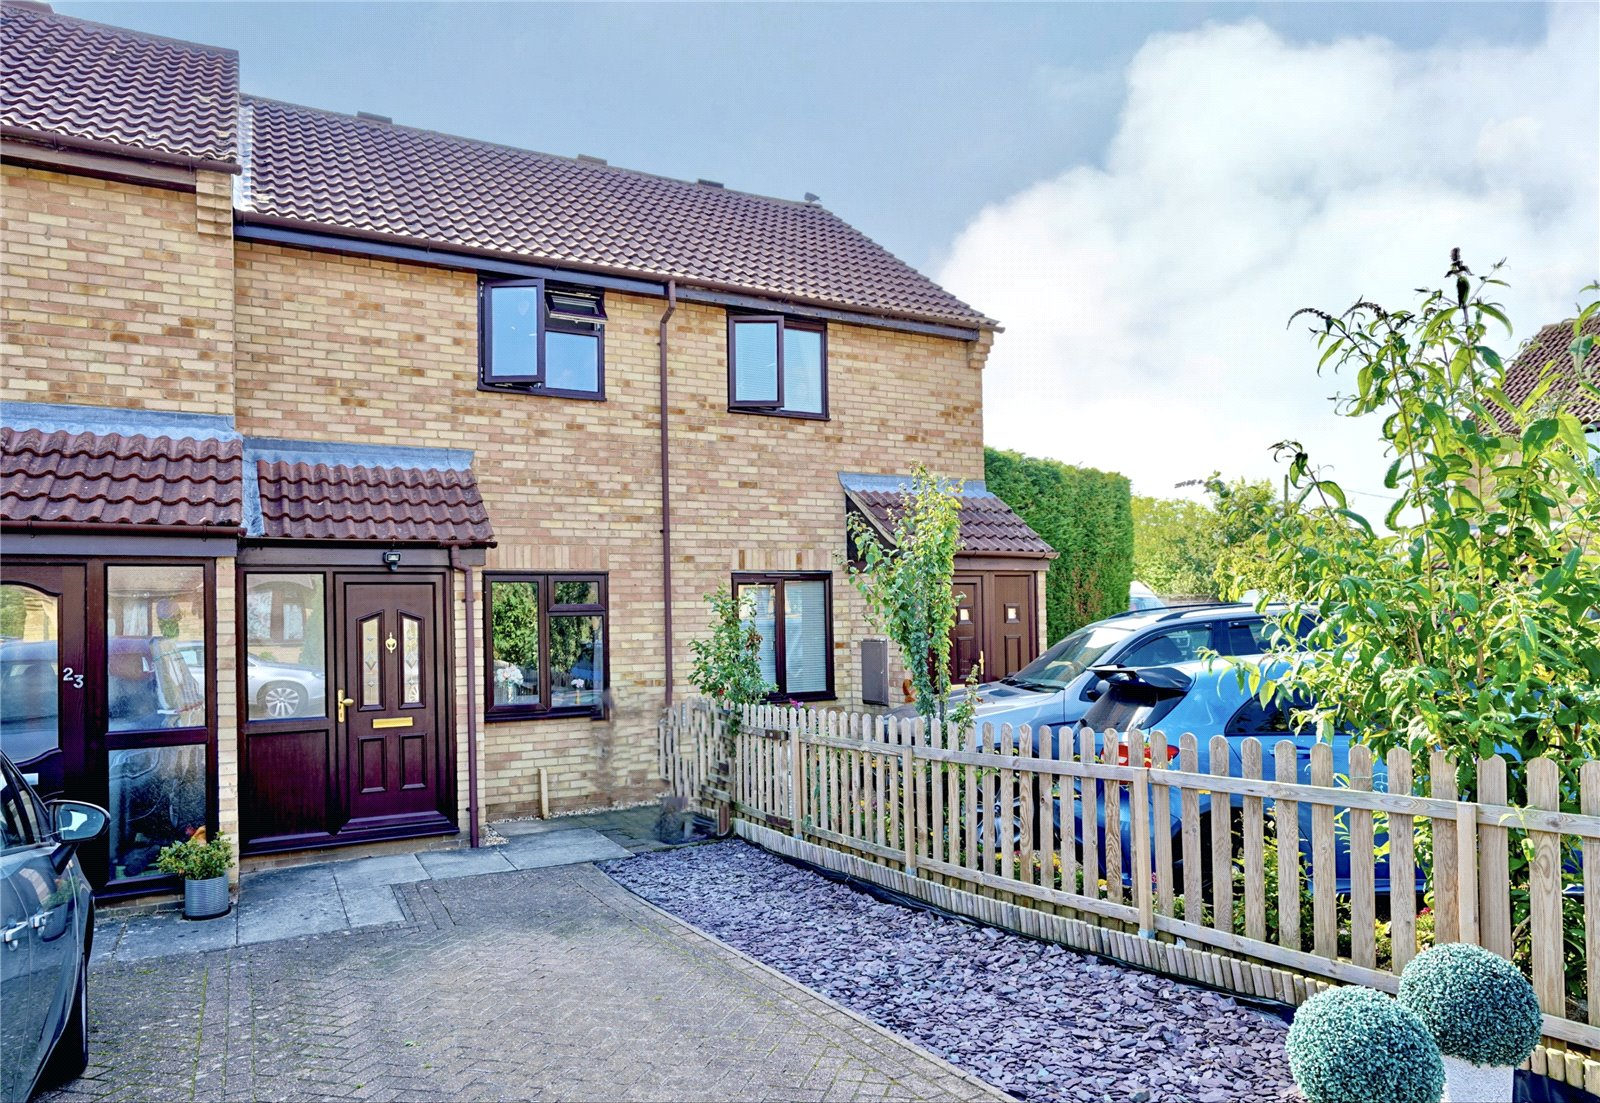 2 bed house for sale in Swallowfield, Wyboston  - Property Image 1